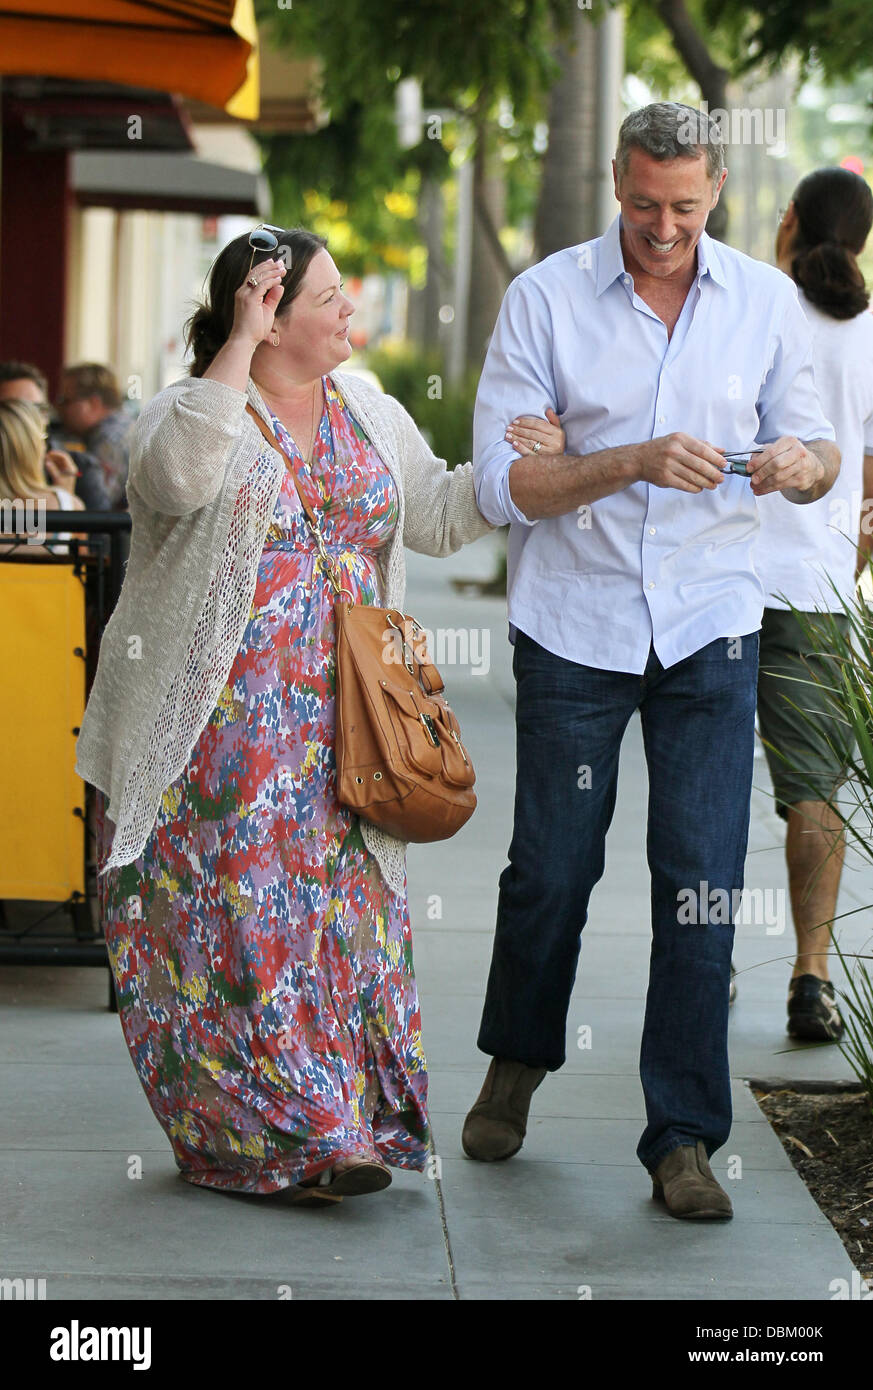 Michael James McDonald and Melissa McCarthy leaving The Farm after having lunch together in Beverly Hills Los Angeles, - Stock Image